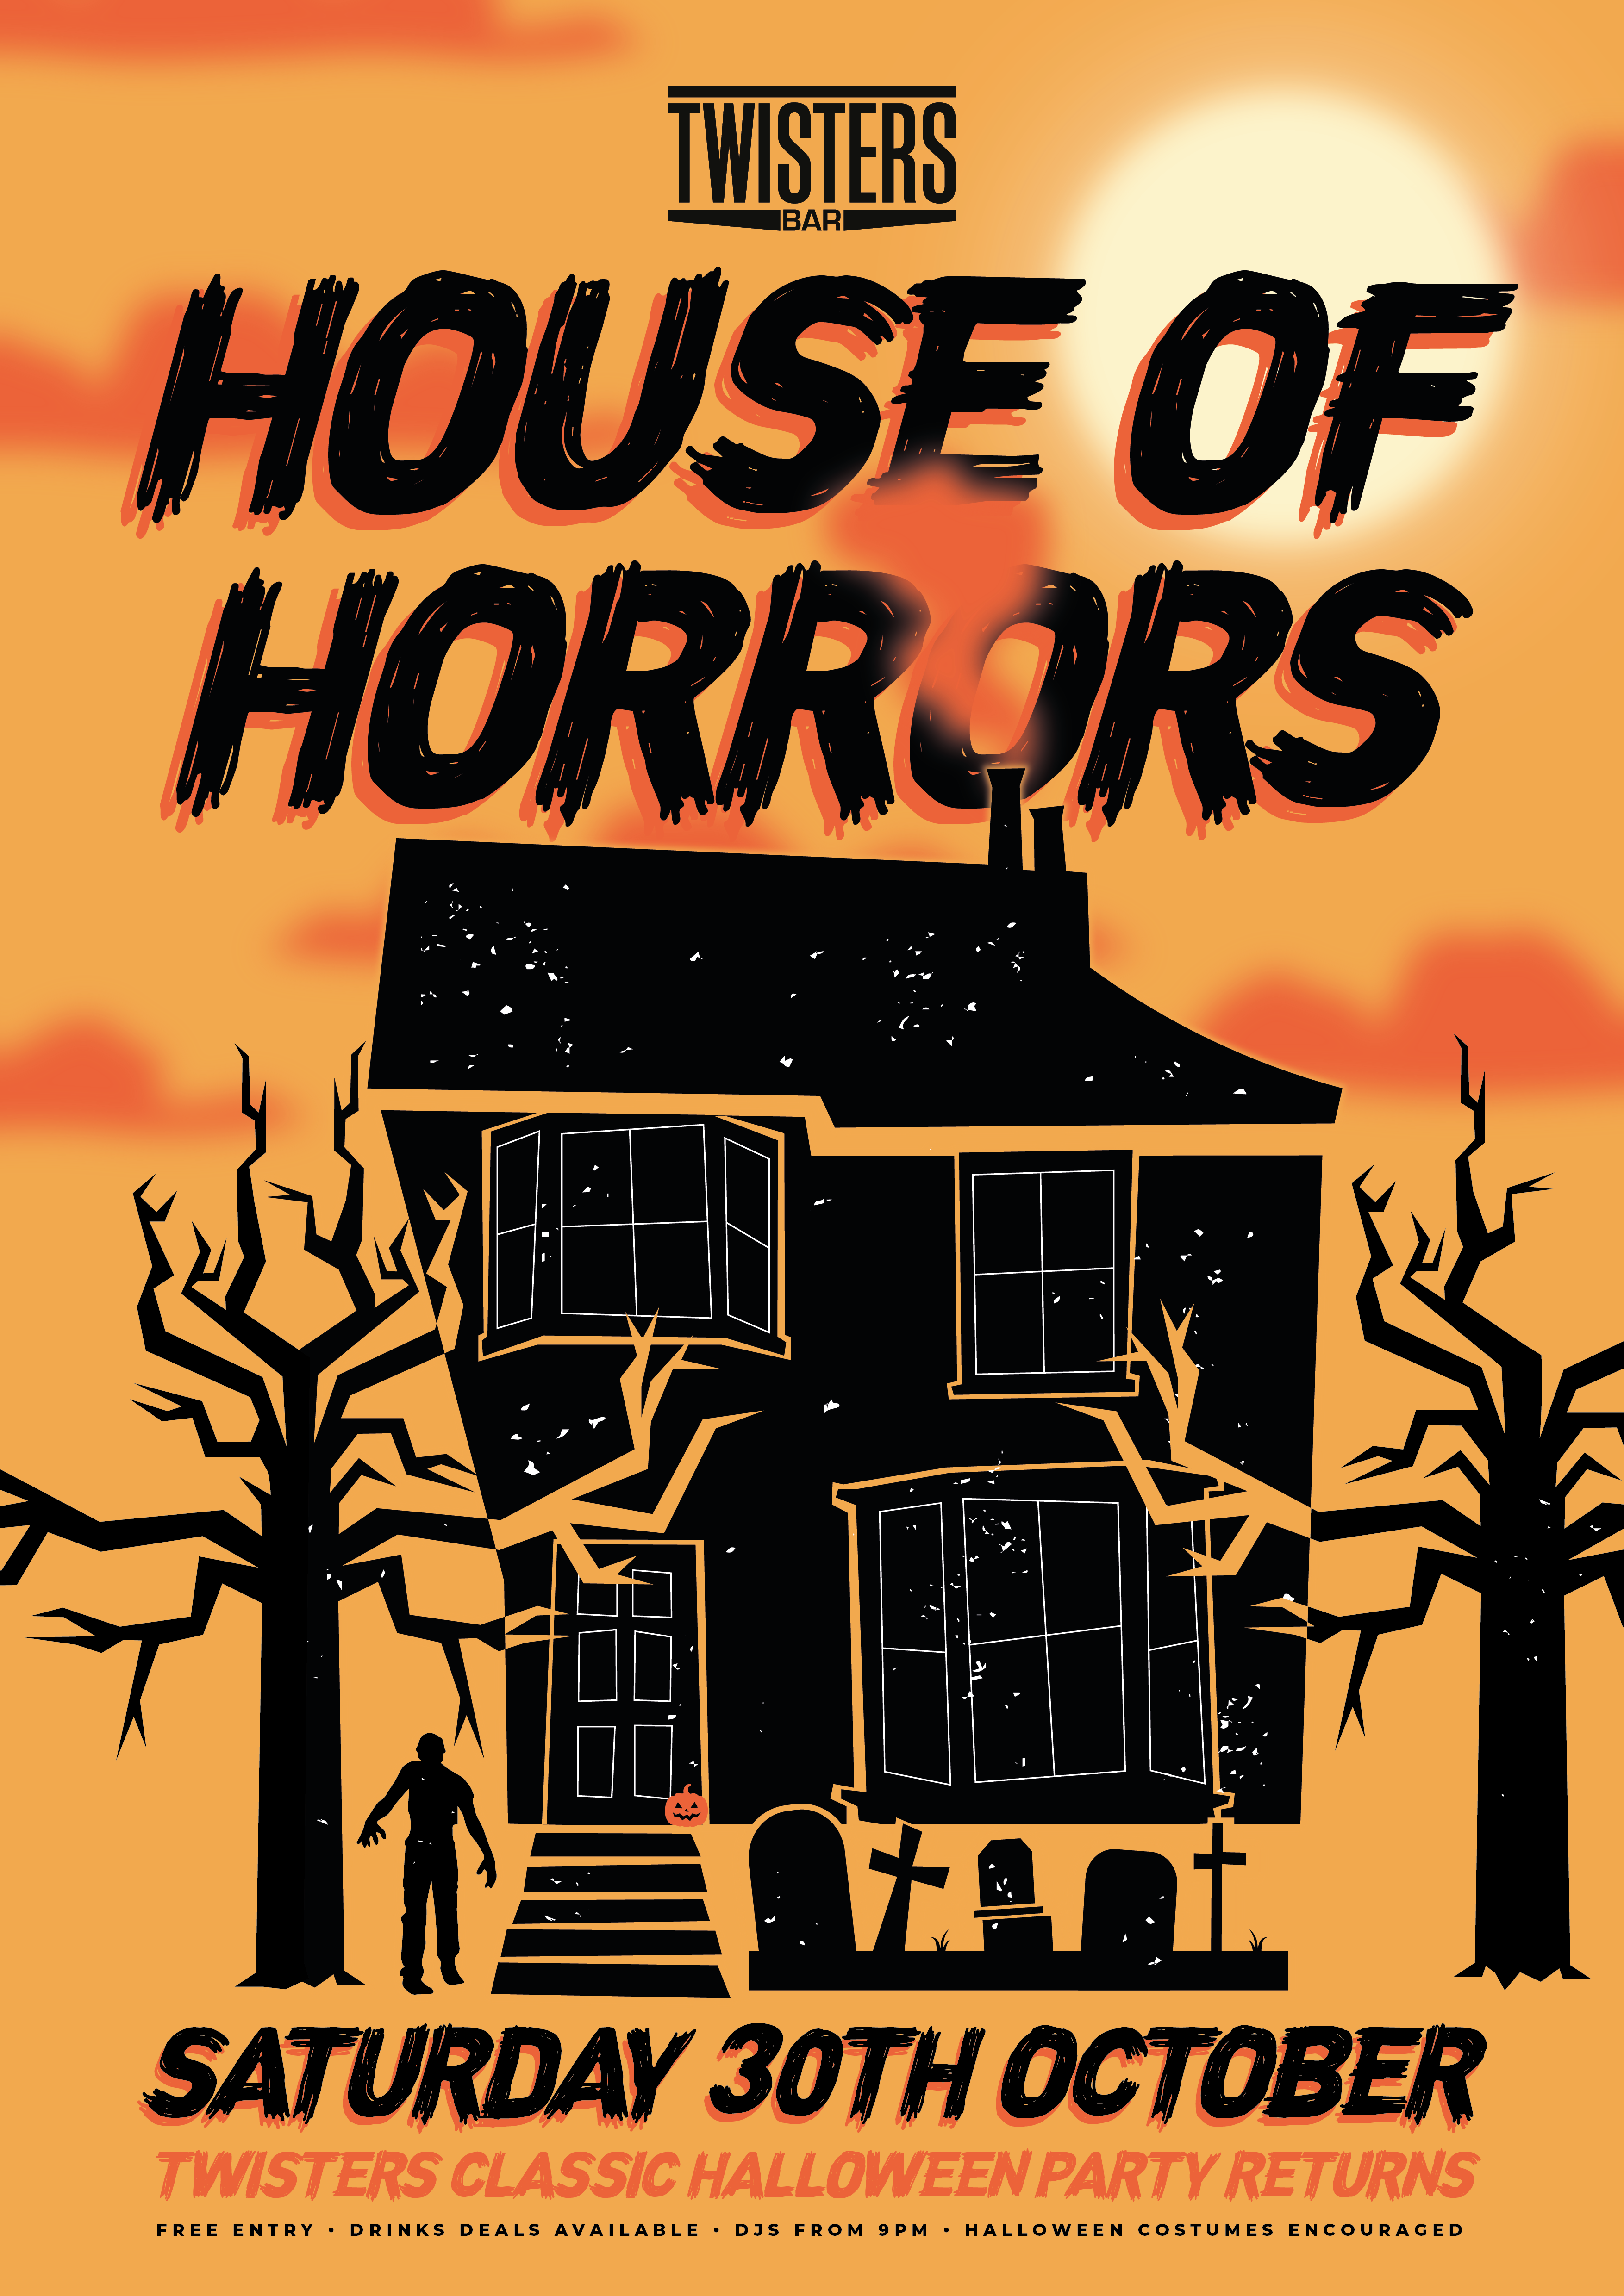 Twisters House of Horrors